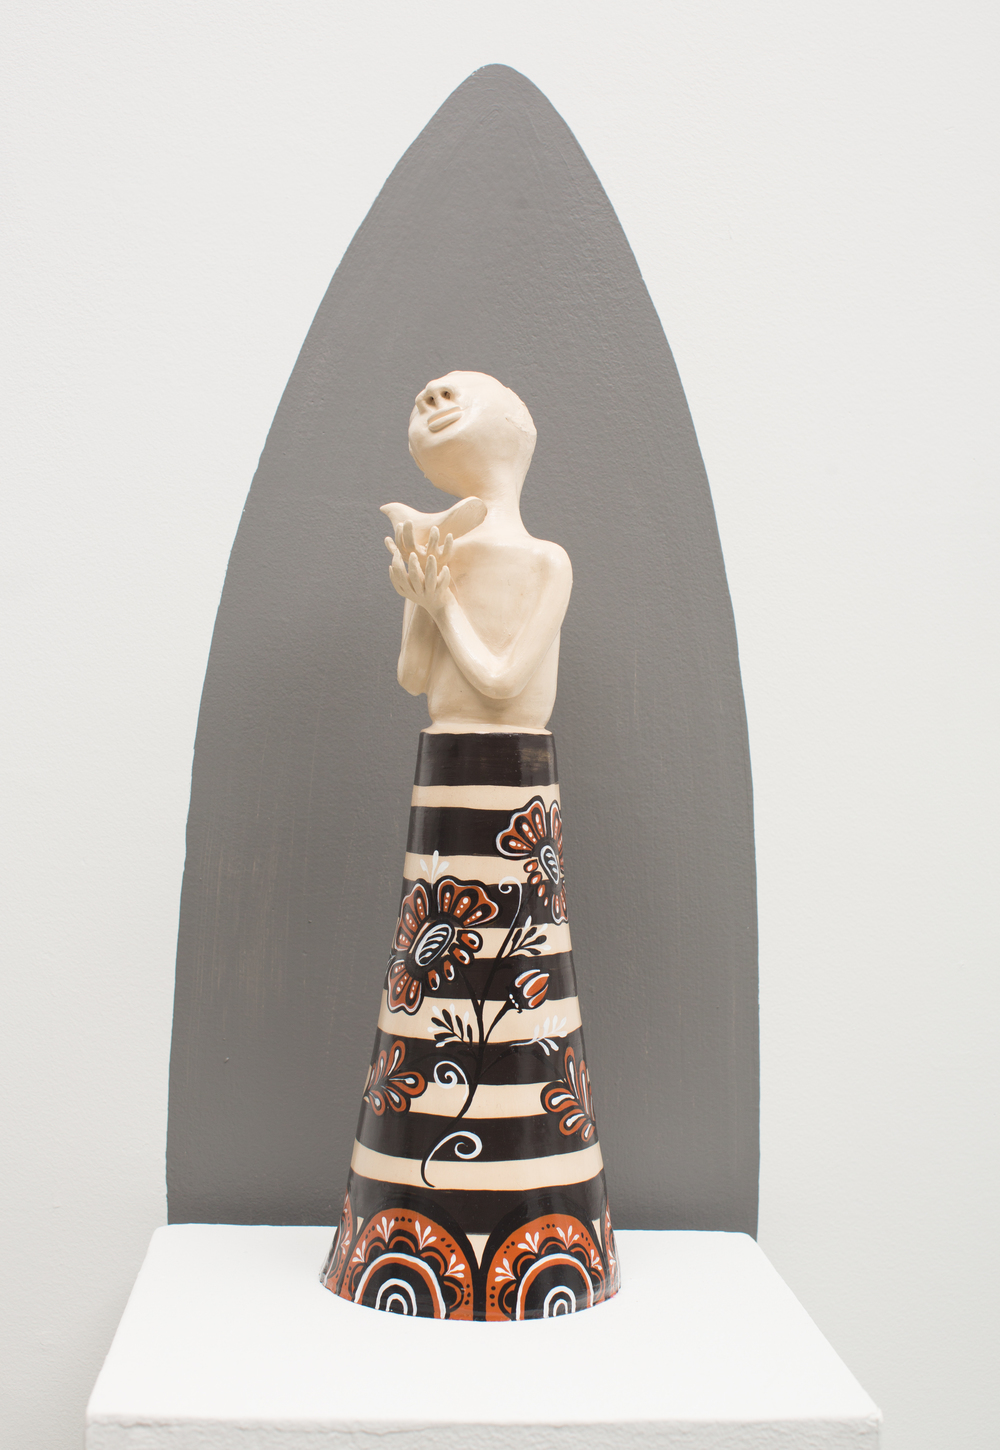 Stoneware Figure with Brid, Reneé Ledesma